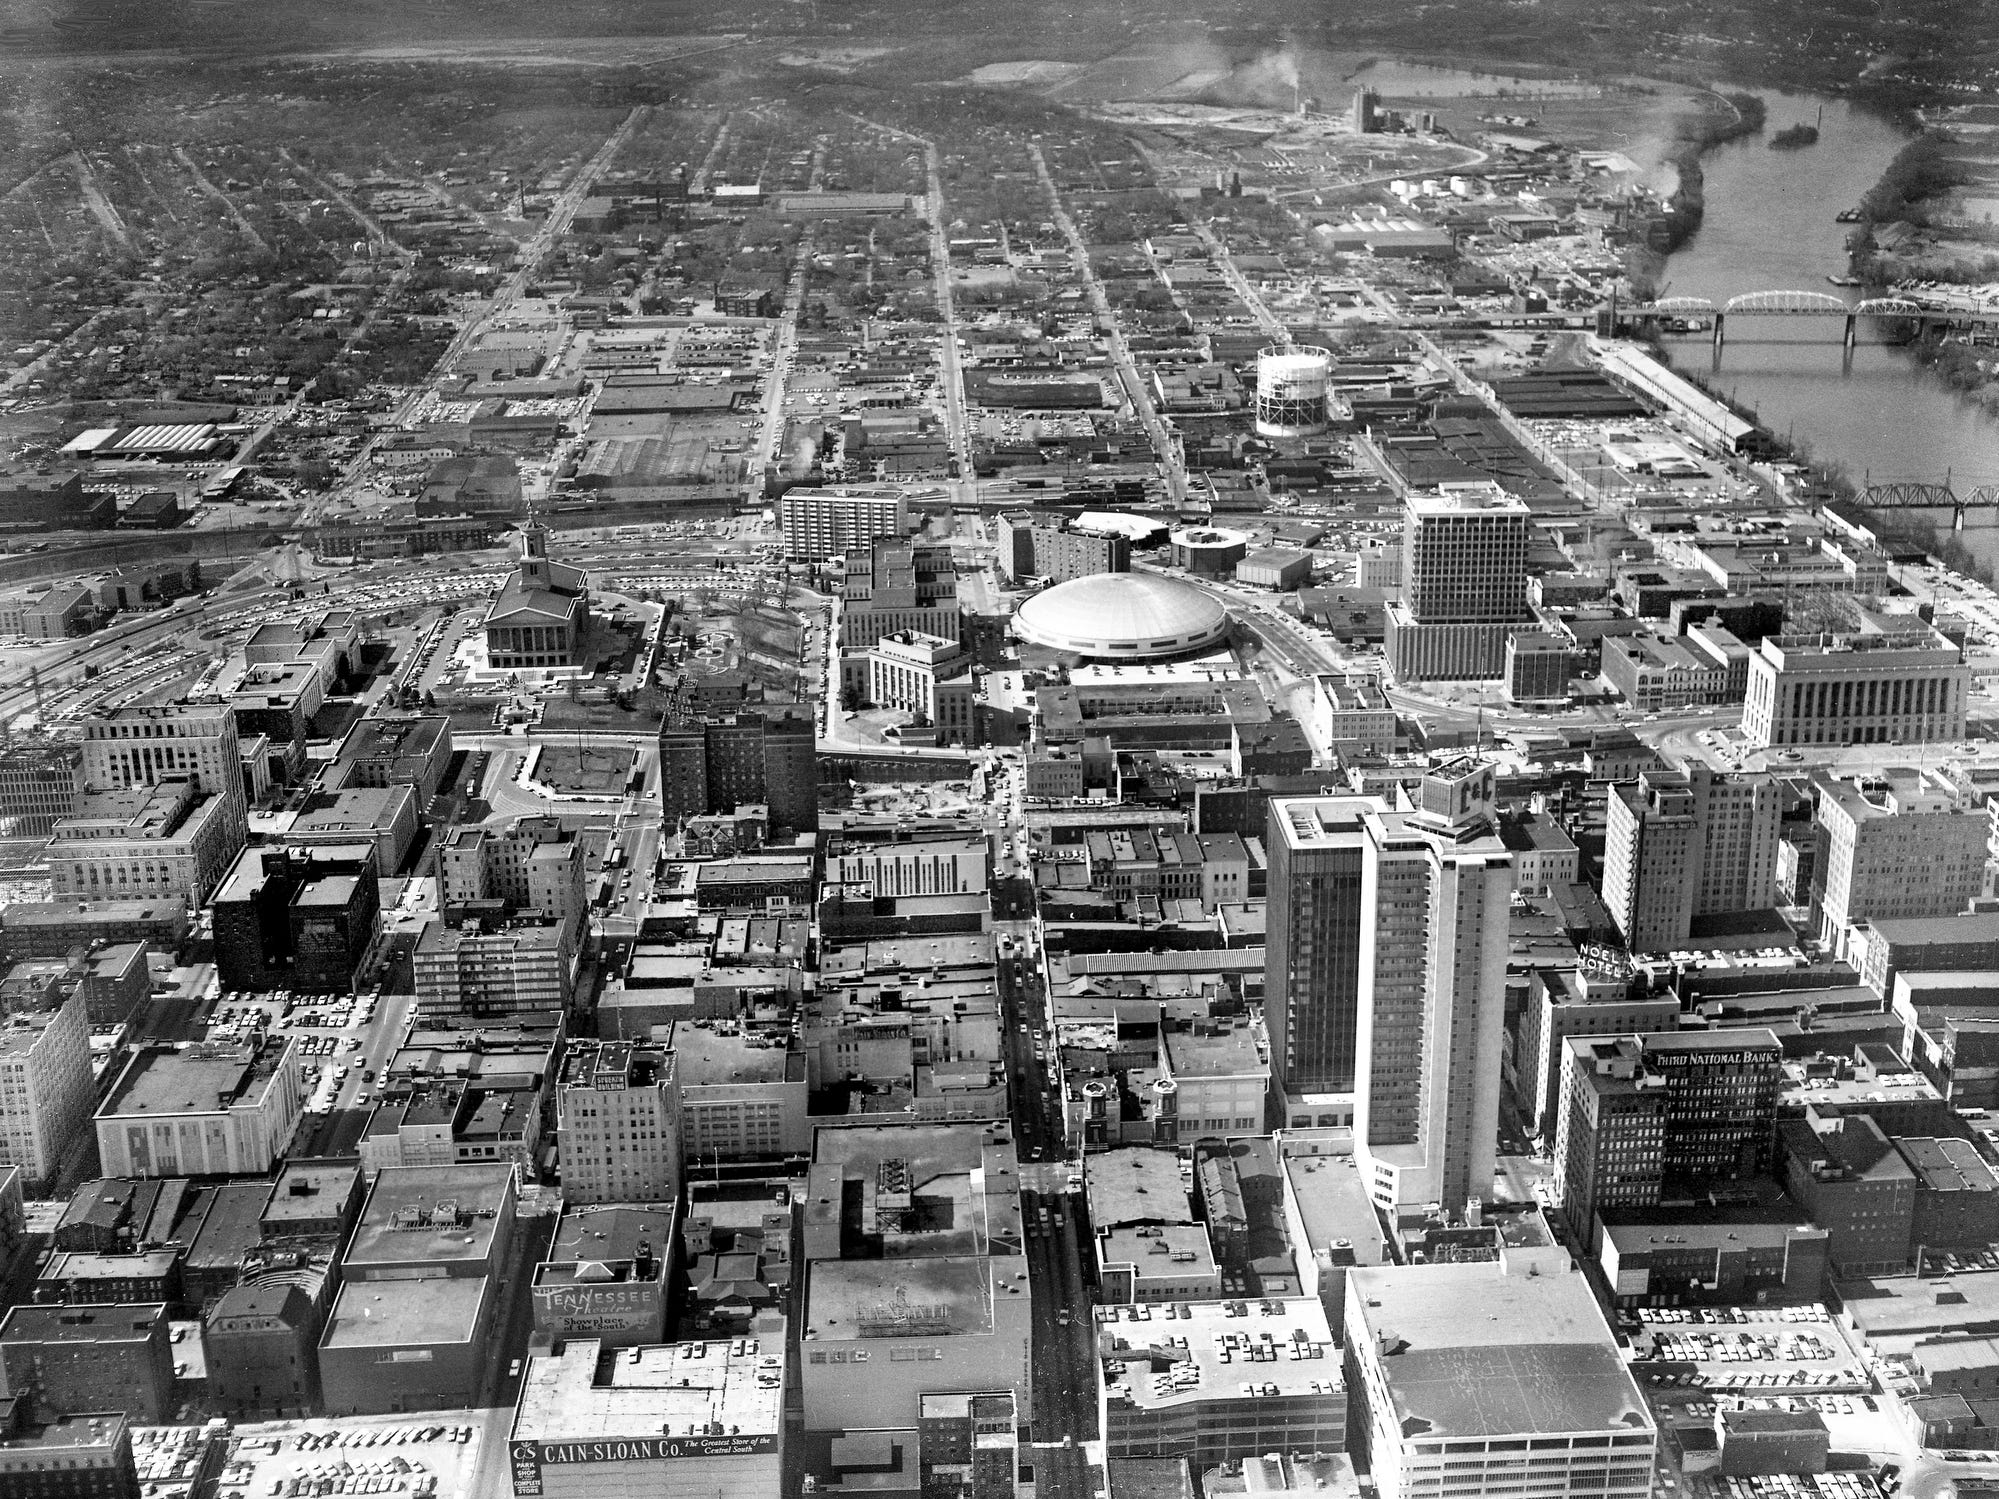 The view of downtown Nashville on a fine spring day April 11, 1968.